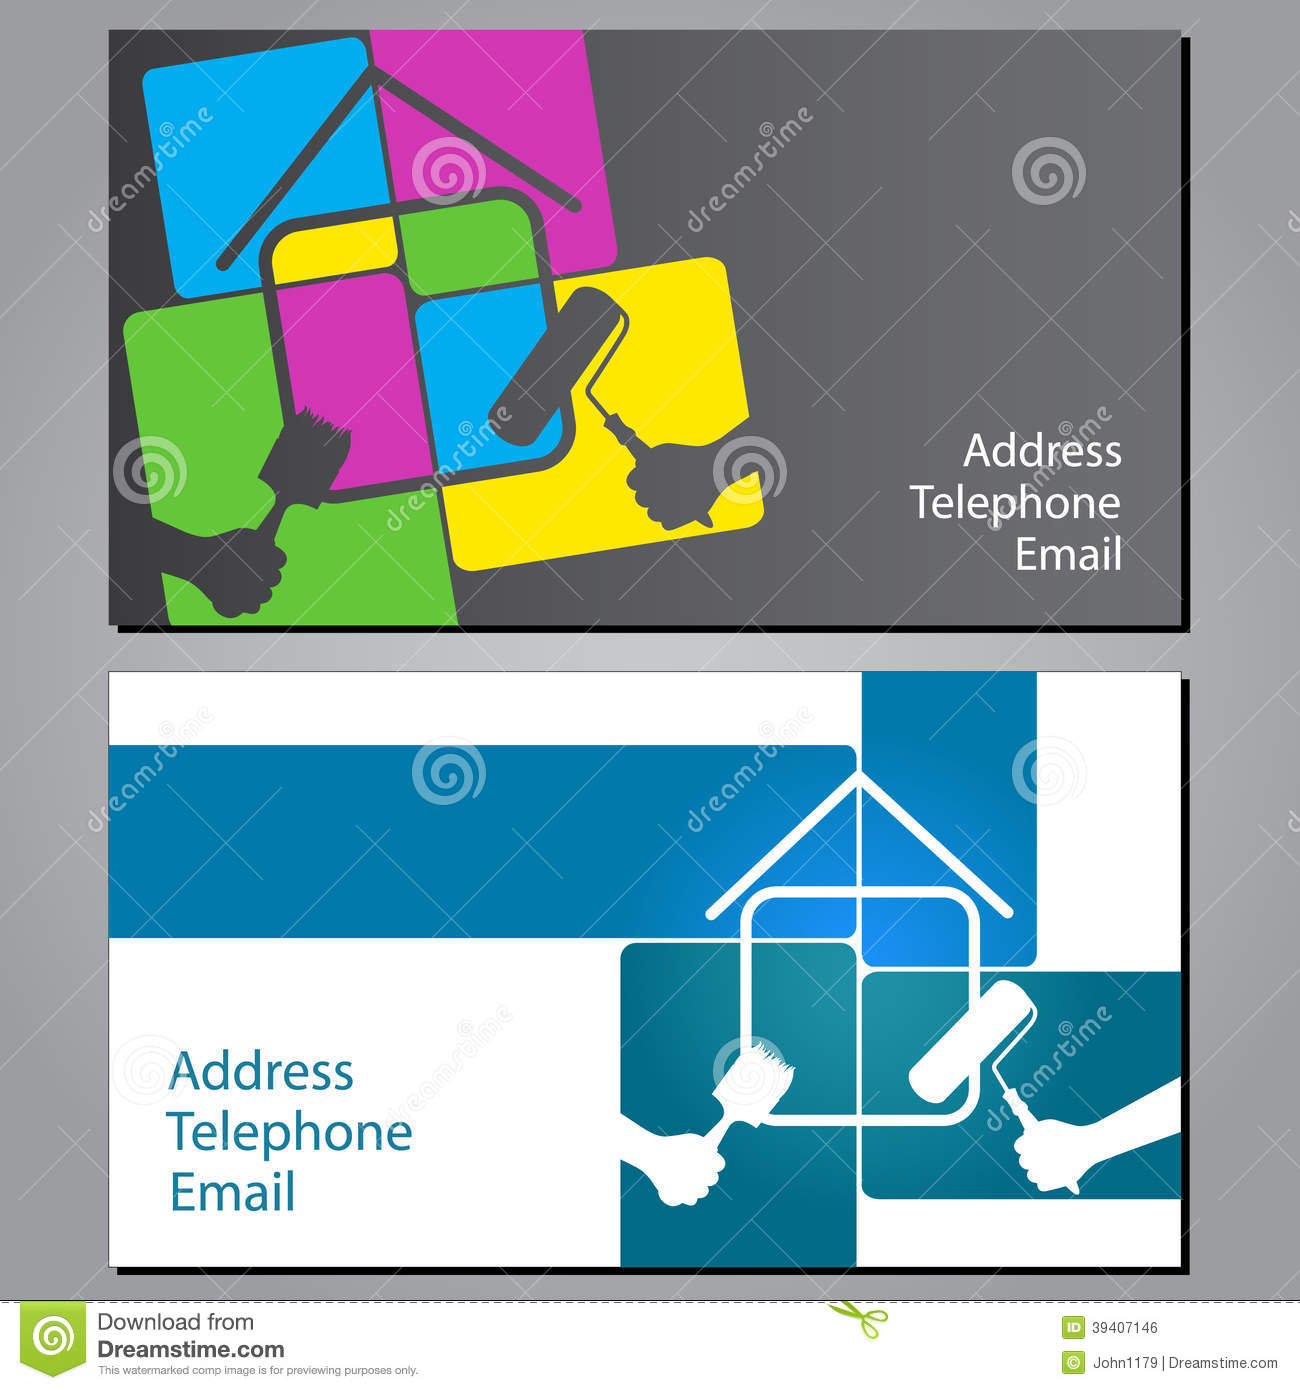 Business card for painting houses